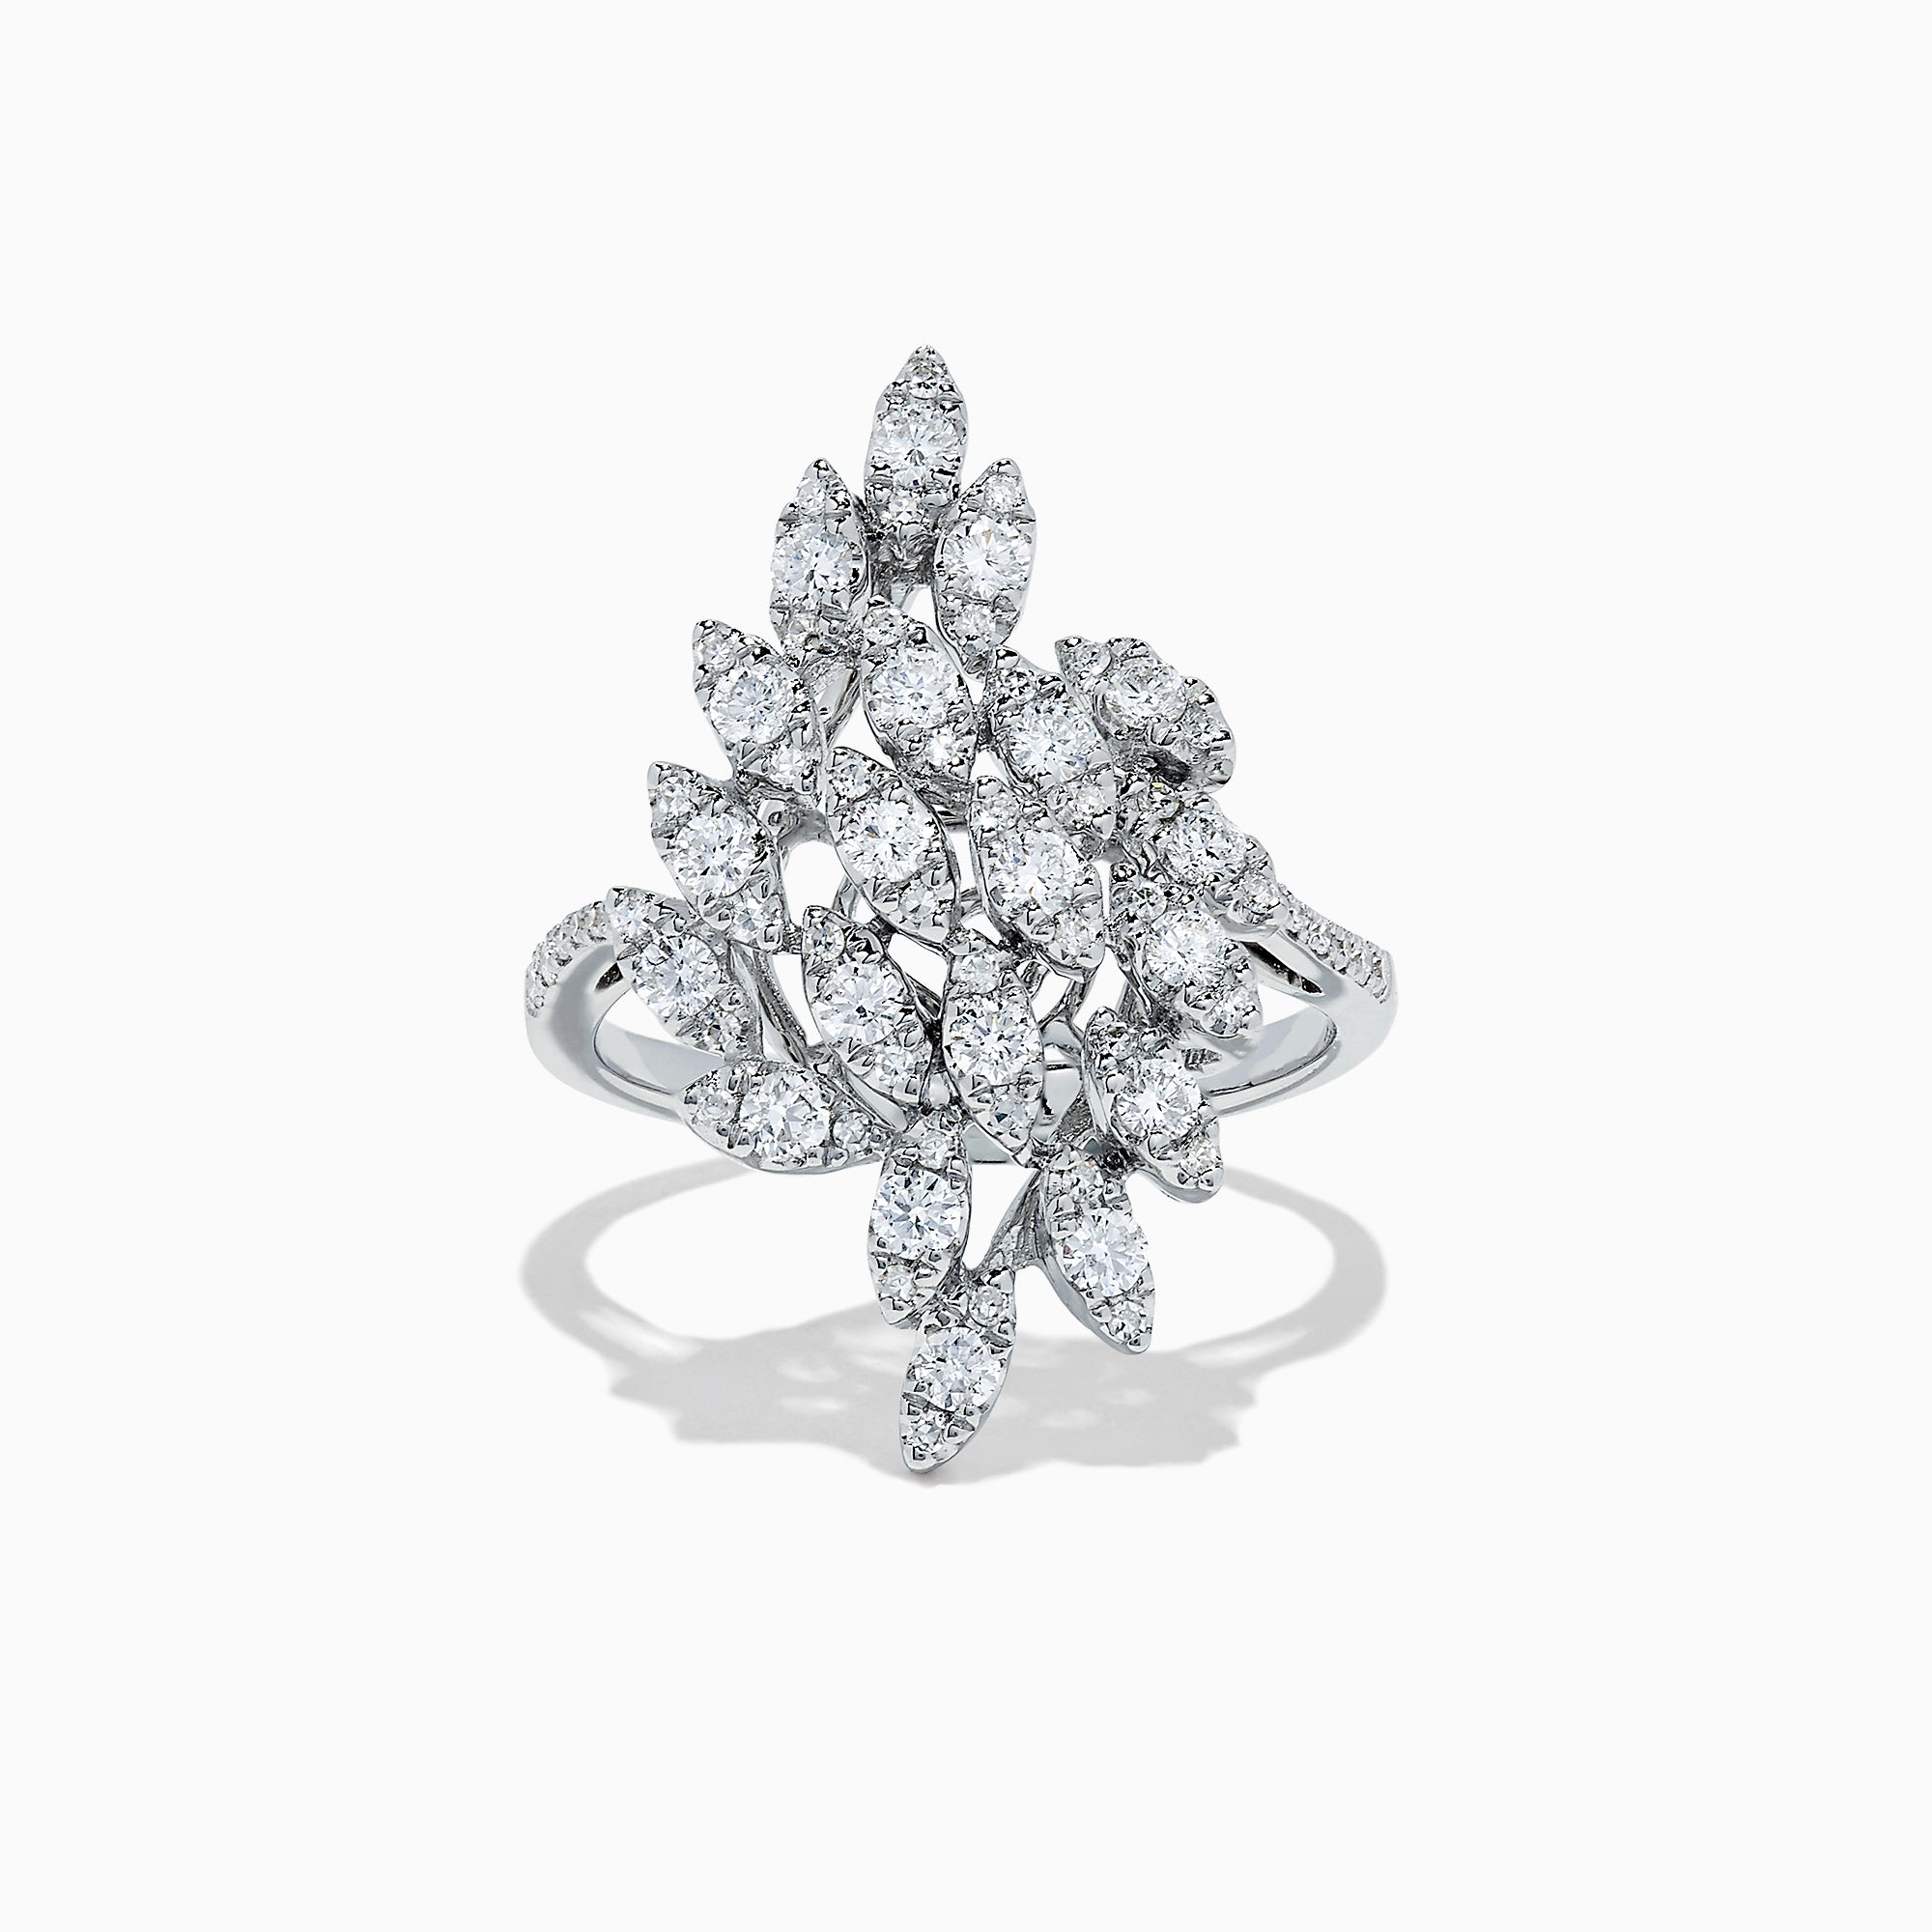 Effy 14K White Gold Diamond Petals Ring, 0.94 TCW